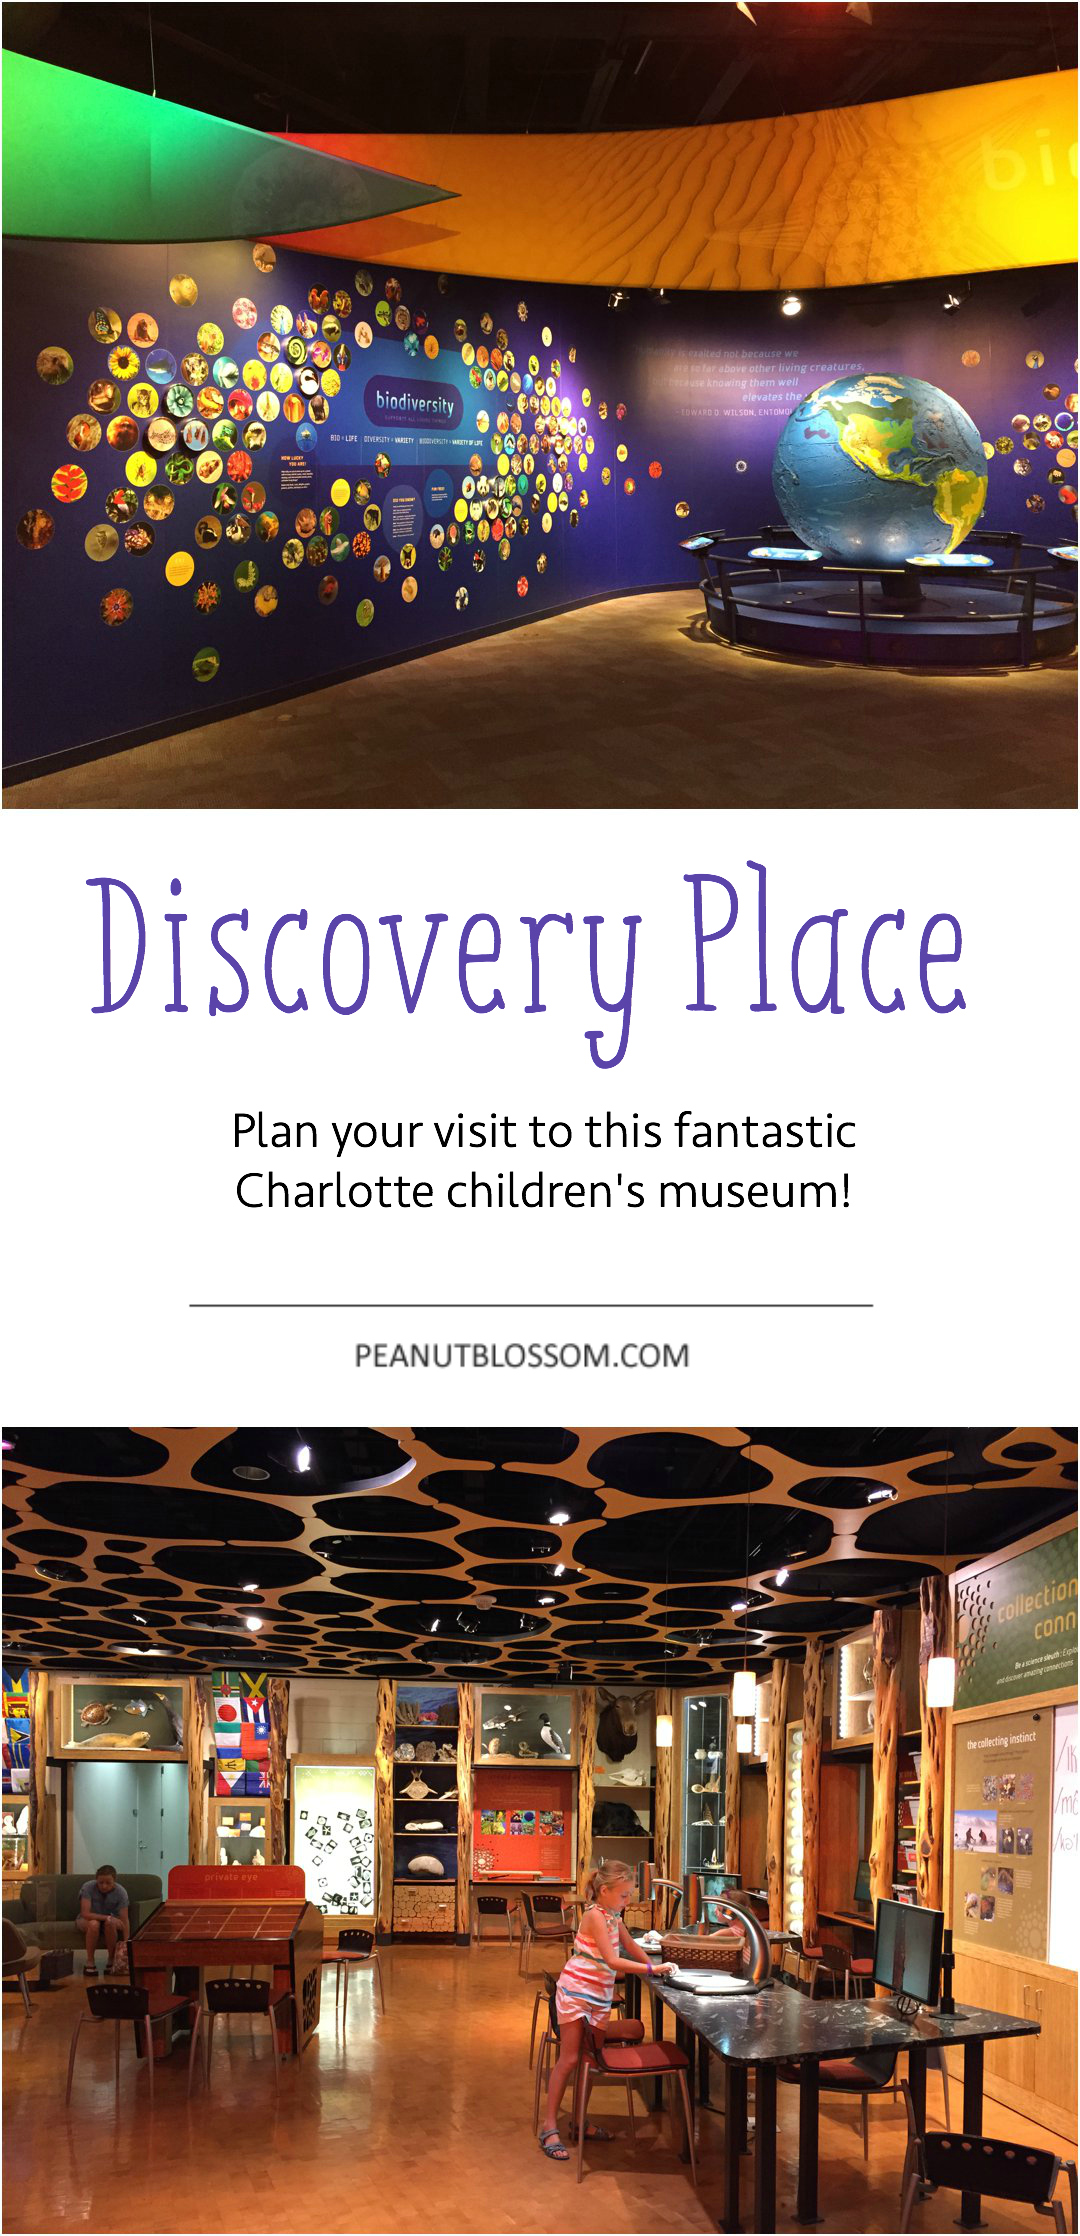 Plan a visit to Discovery Place in Charlotte, NC